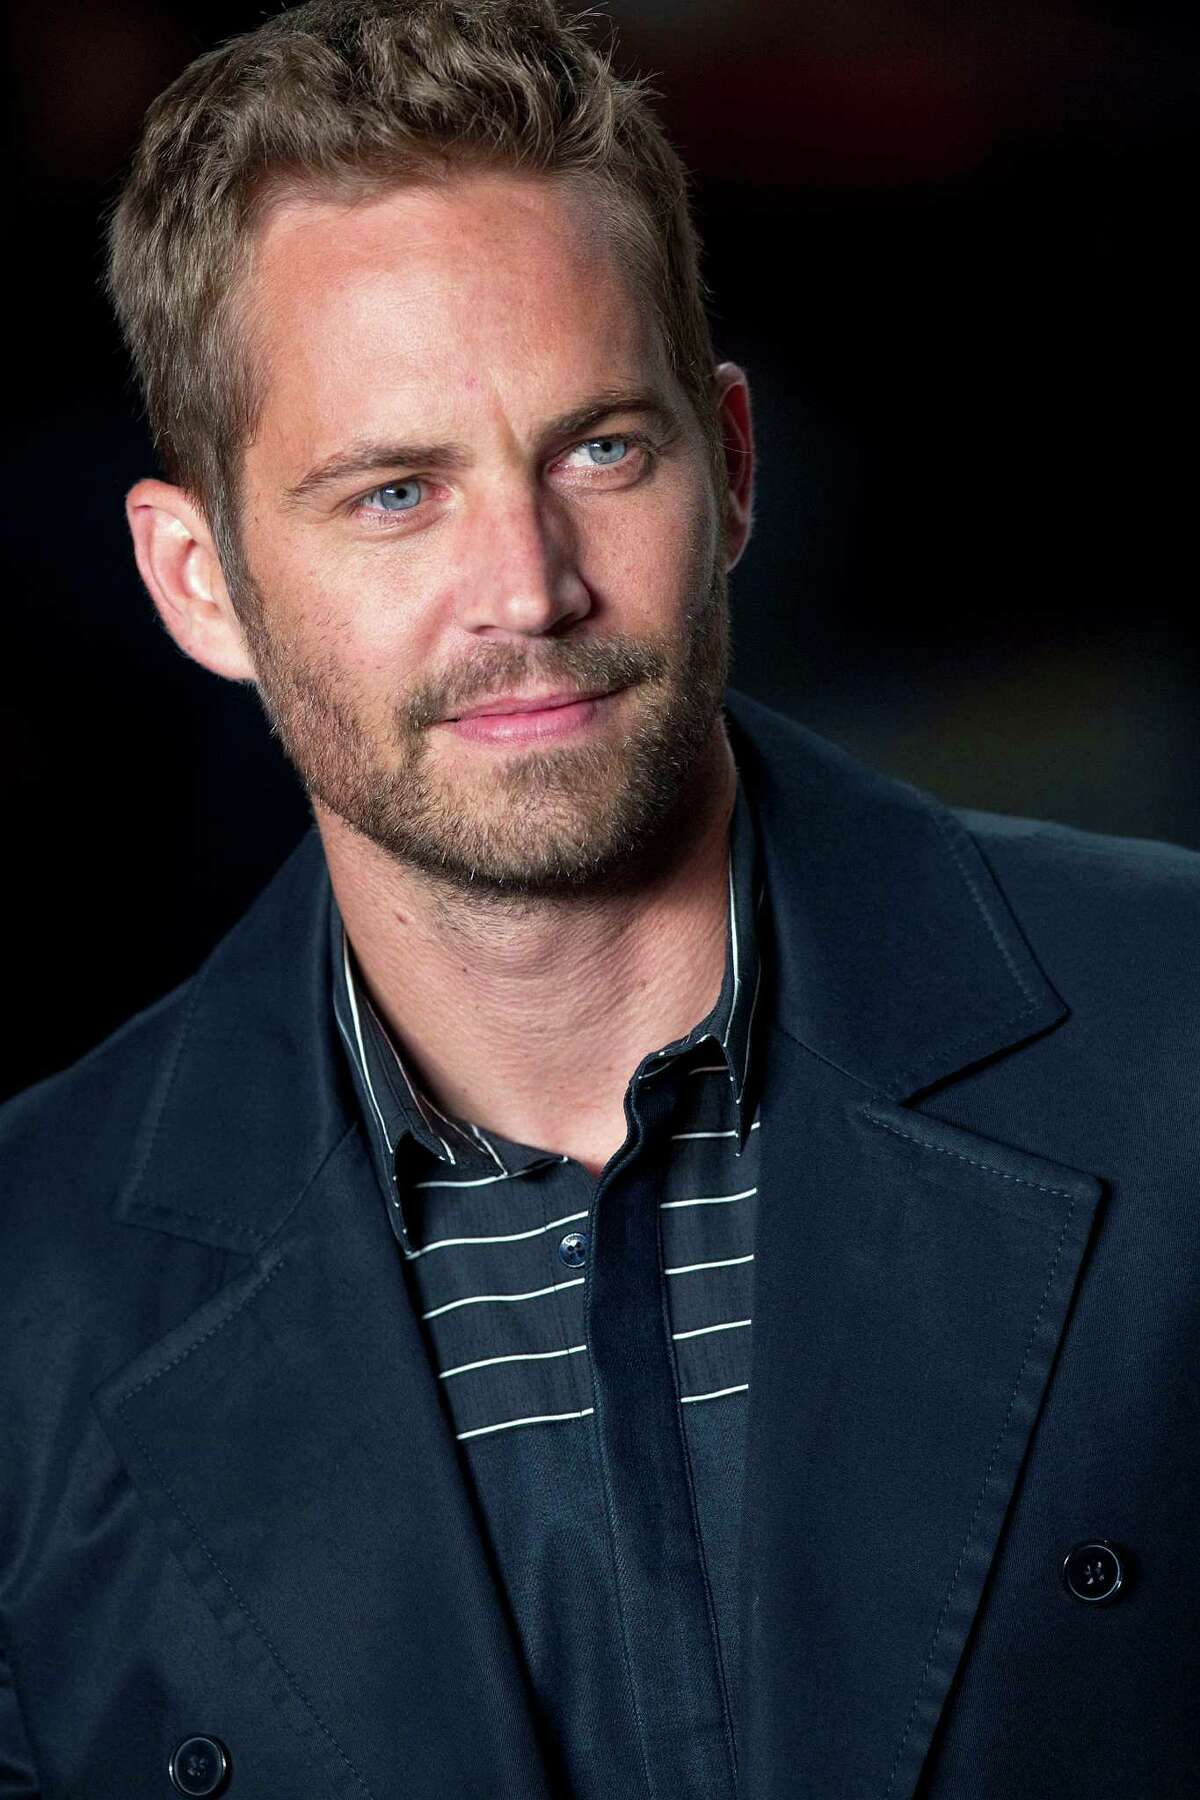 Paul Walker, age 40 The 'Fast and Furious' actor died on November 30, 2013 when the speeding car he was riding in crashed into a tree and a light pole and burst into flames.